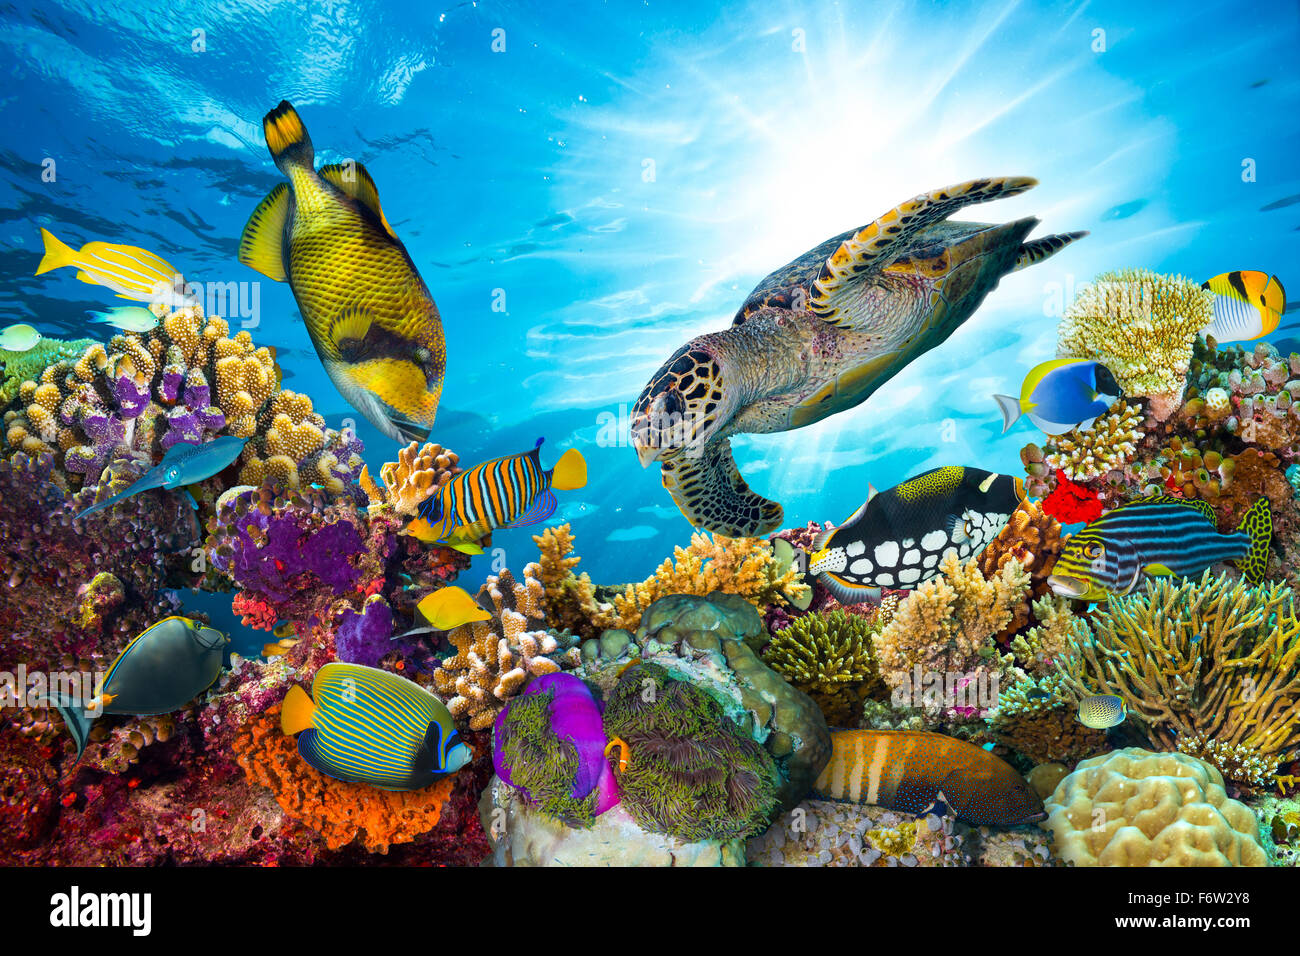 colorful coral reef with many fishes and sea turtle - Stock Image